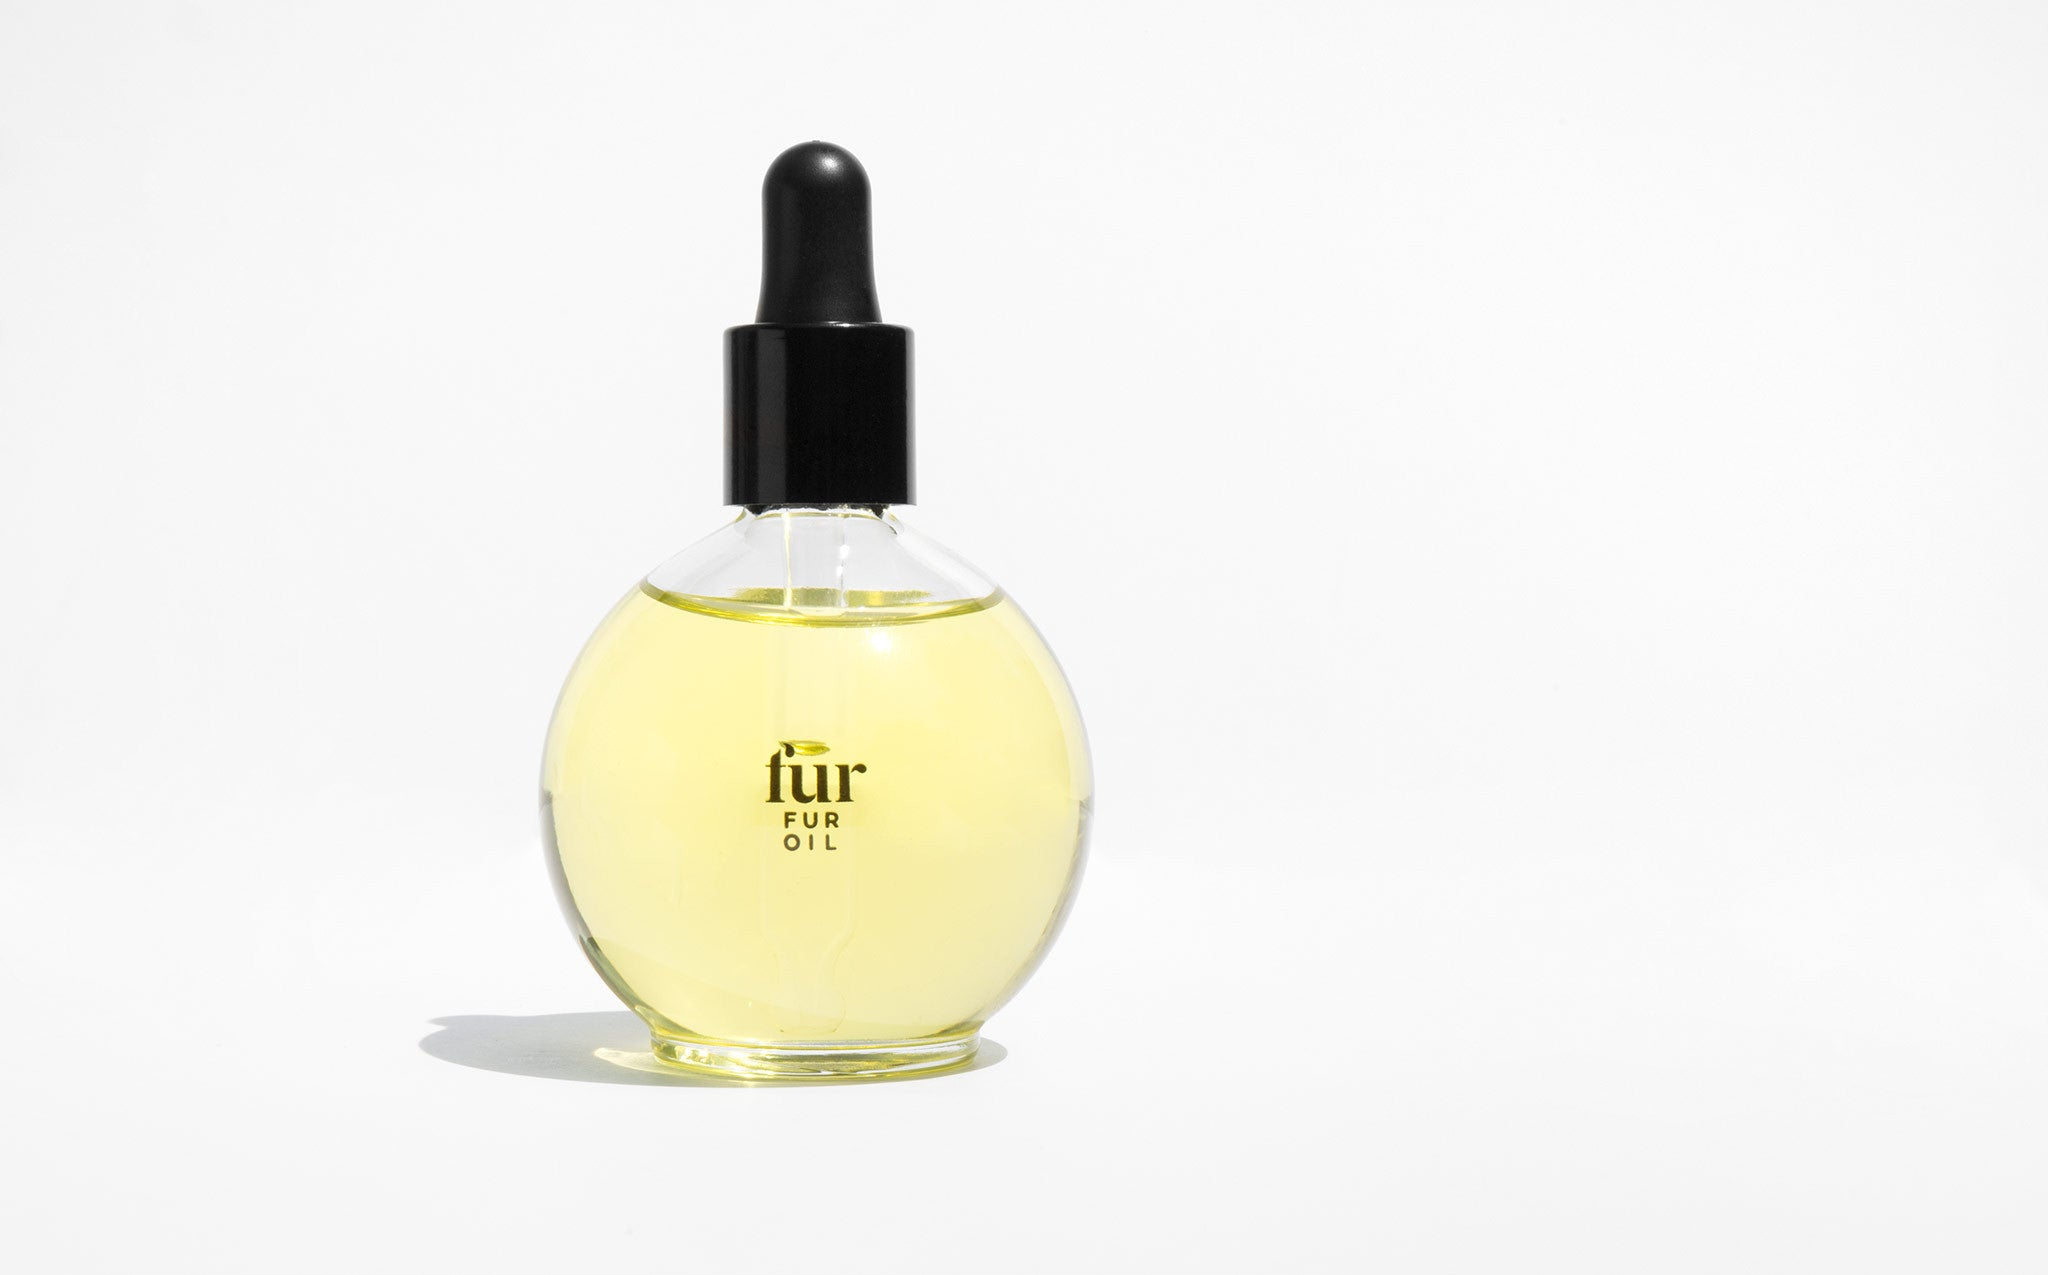 Fur Oil kindred black